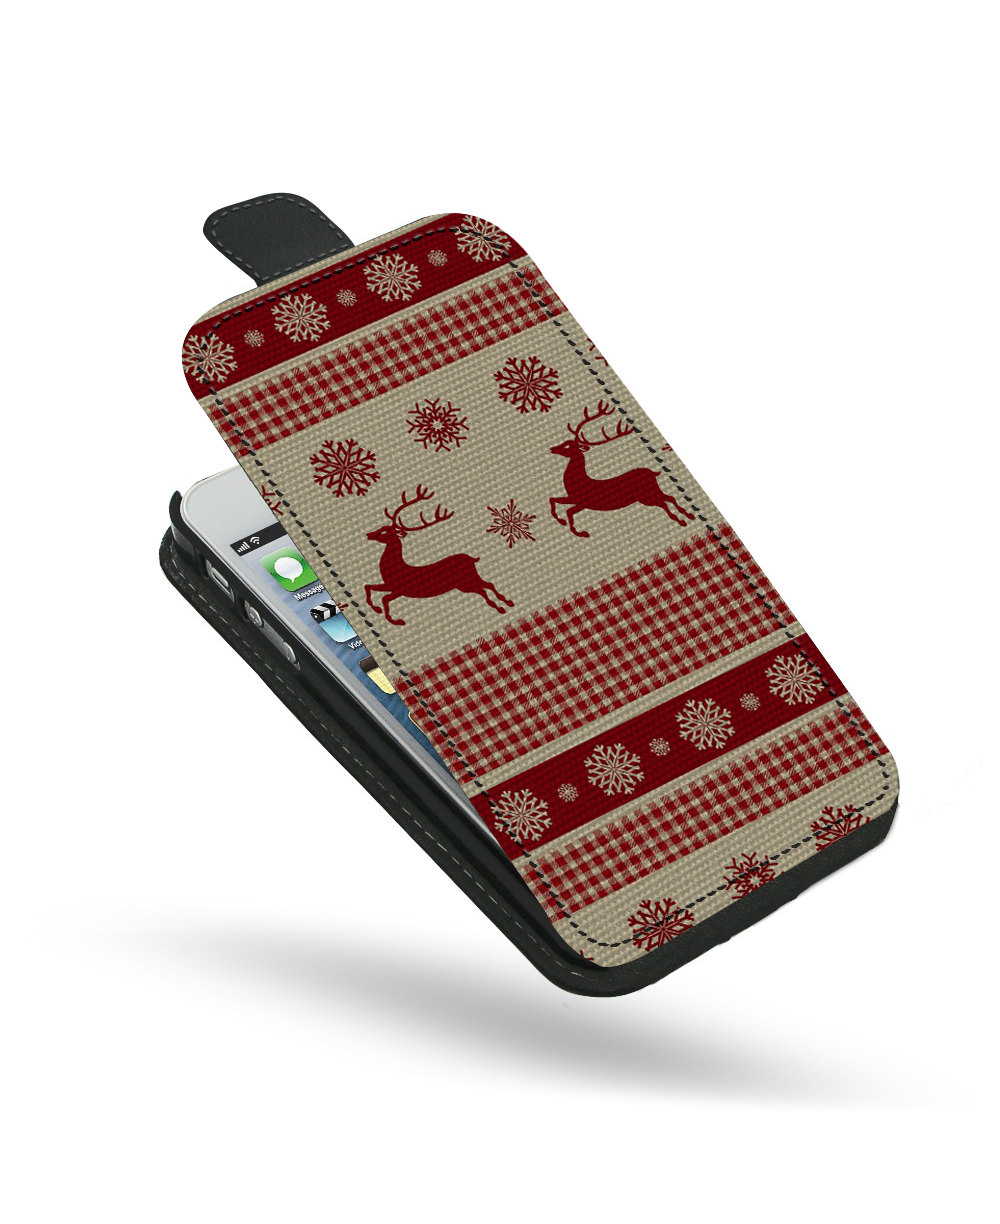 27 Cute Christmas iPhone Cases - Style Motivation